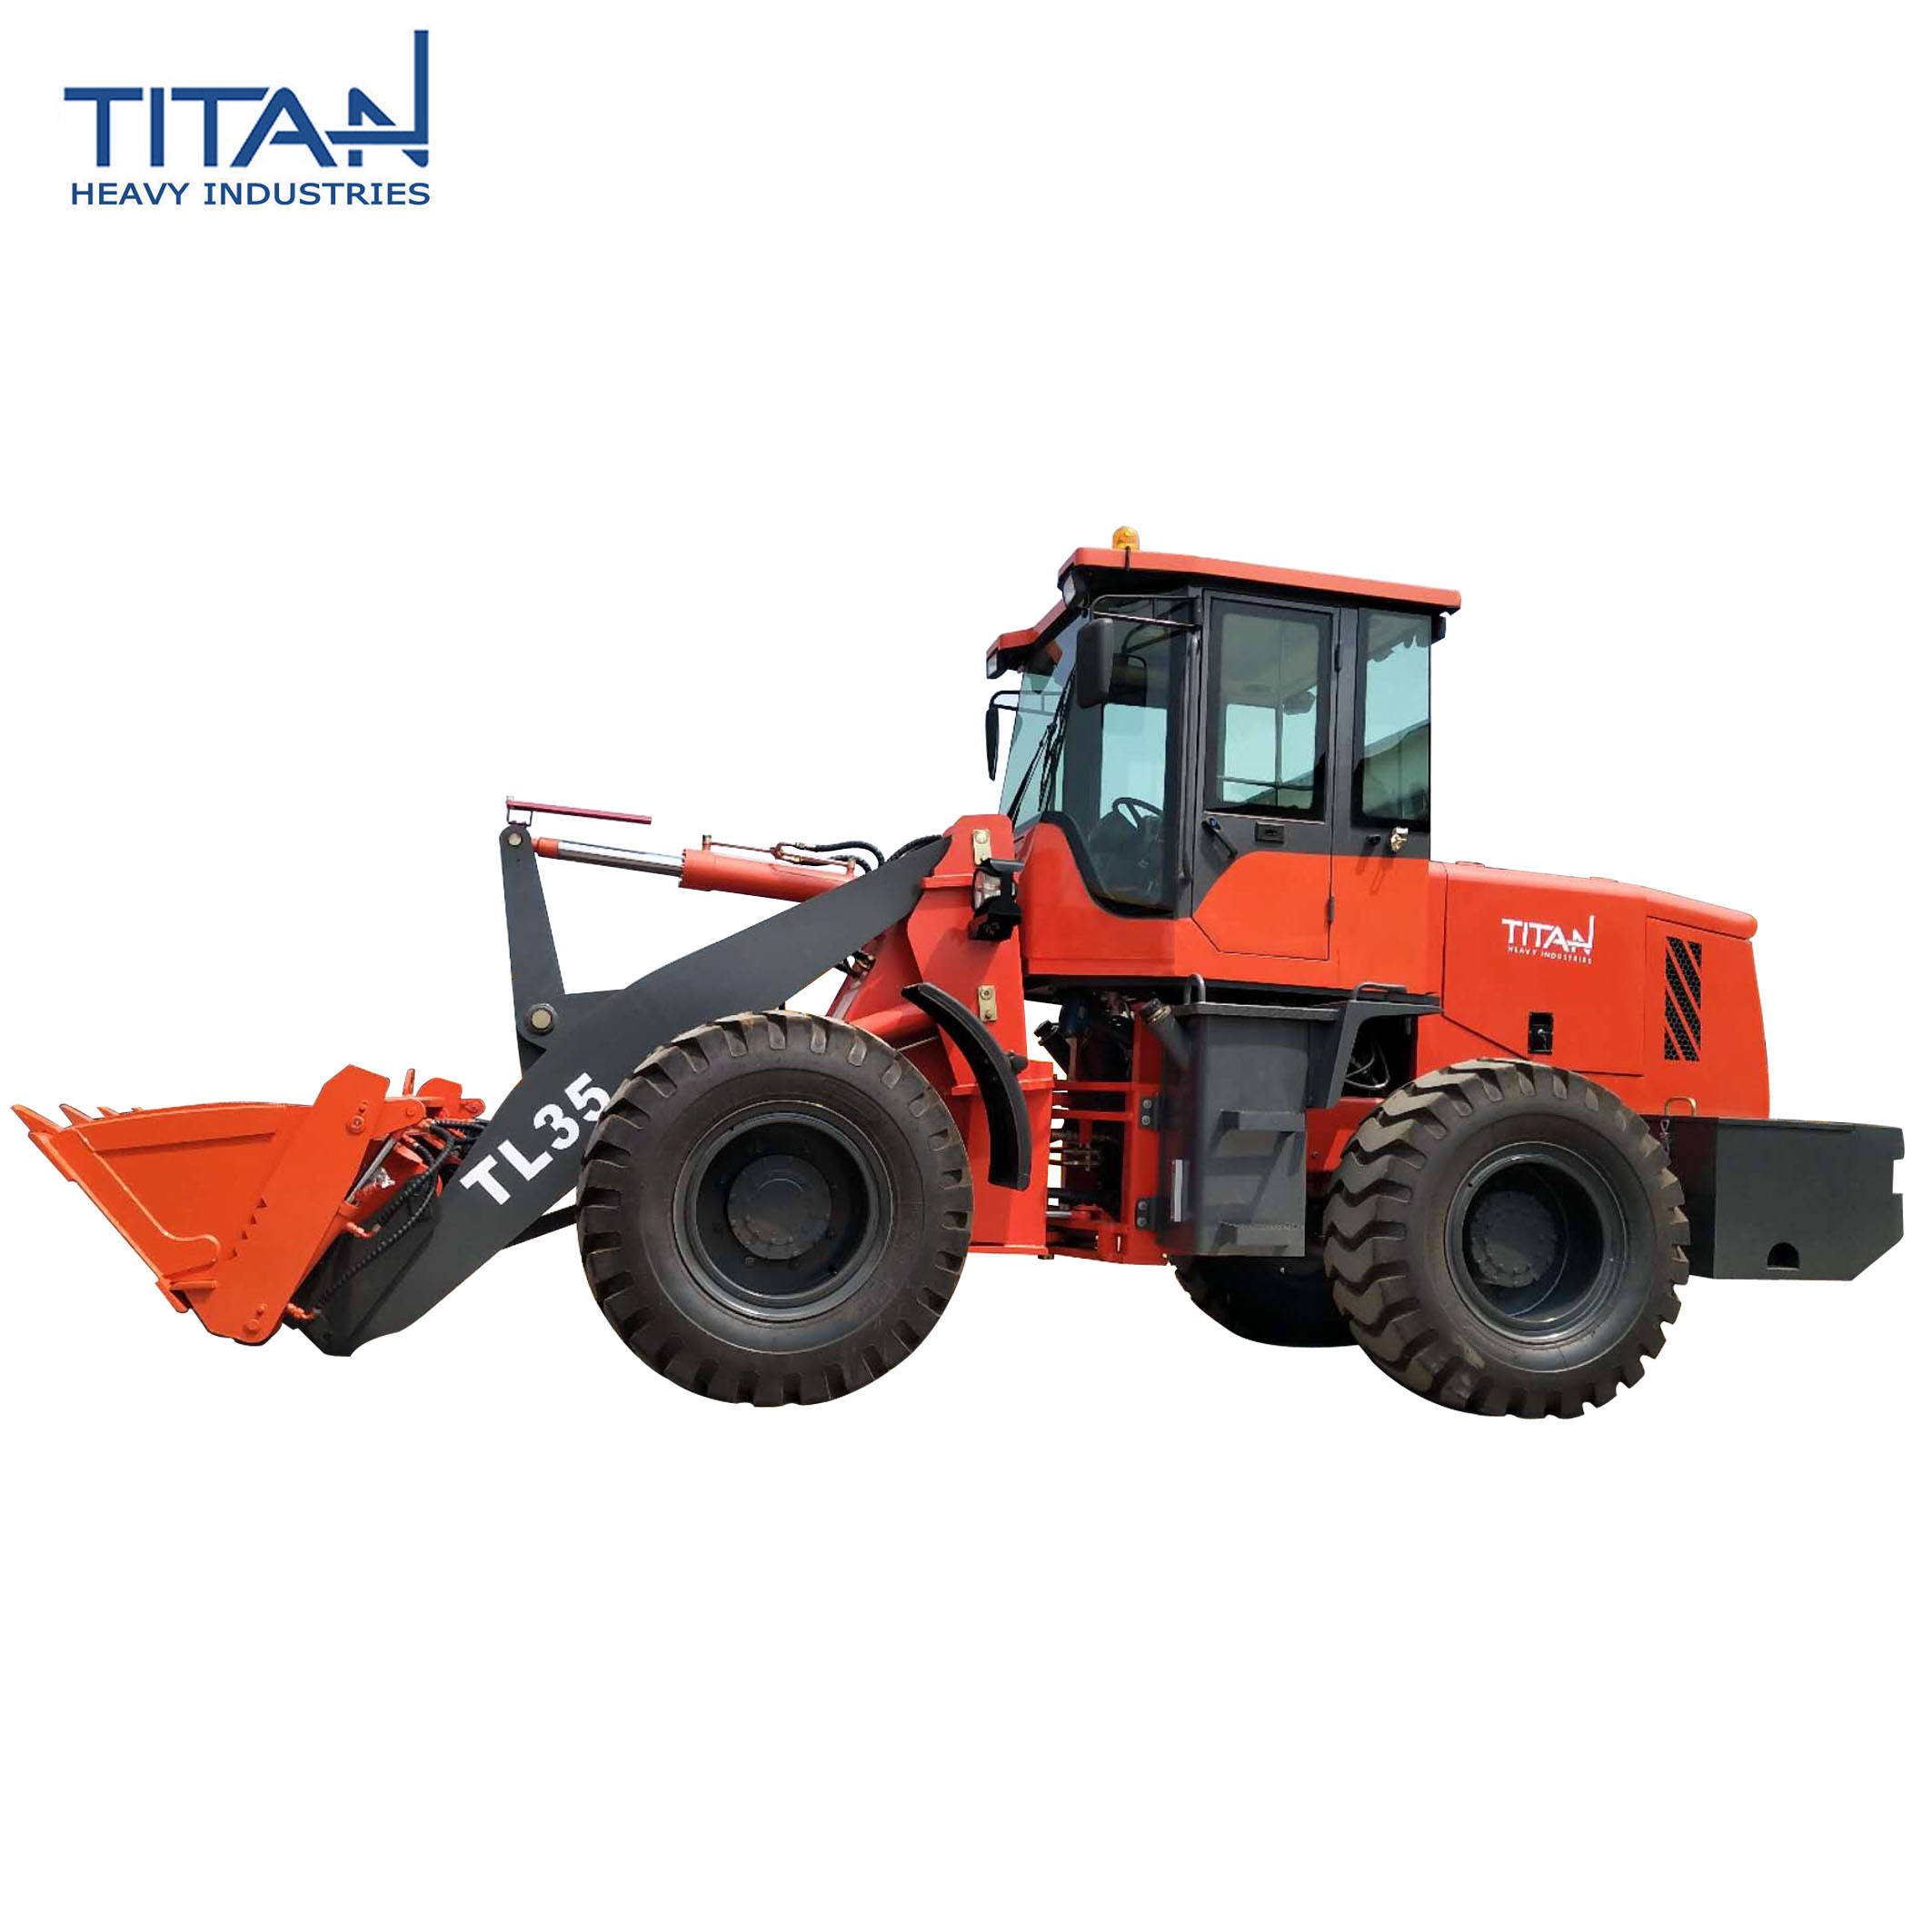 4 wheel drive truck tractor China Manufacturer Titan Brand Zl35f Front Wheel log clamp mini garden whell loader for Sale